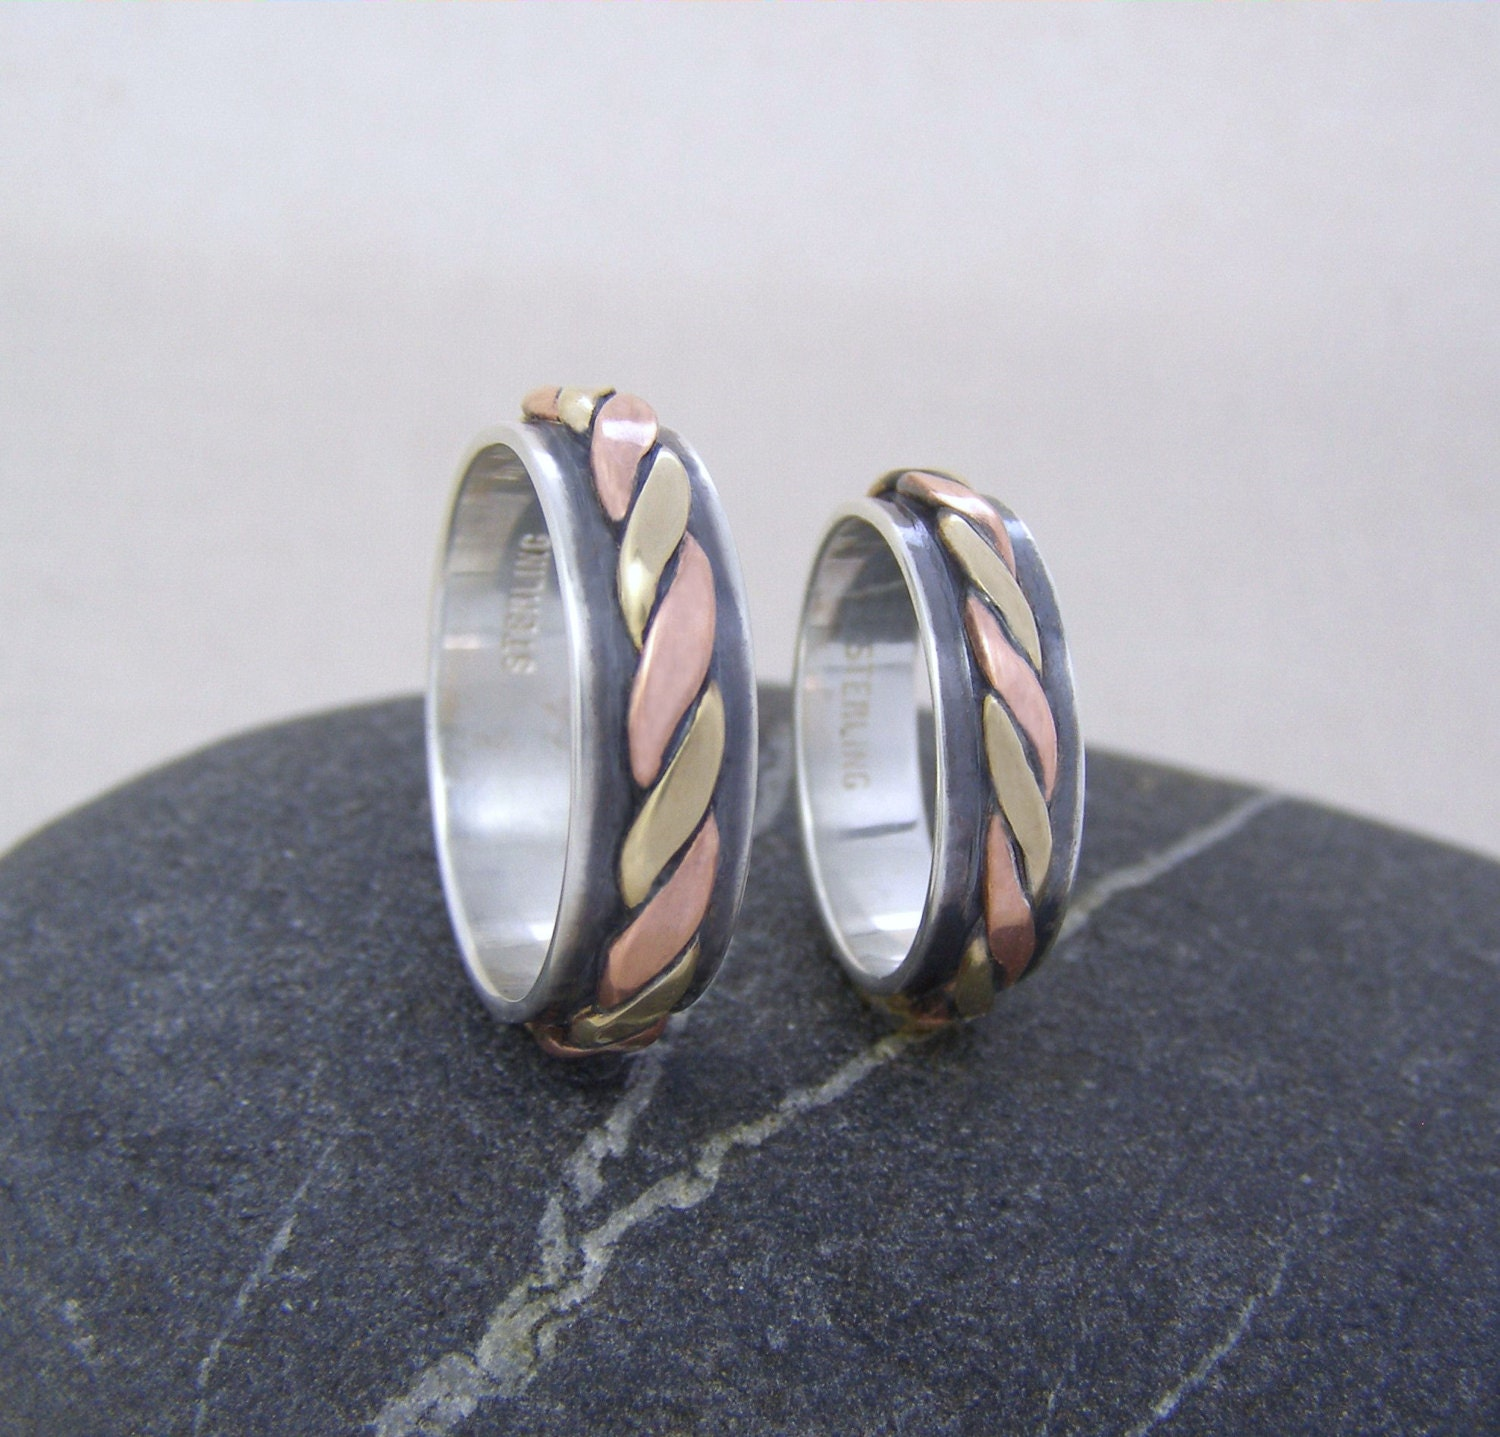 Rustic Wedding Ring Set Silver Copper And Bronze Wedding